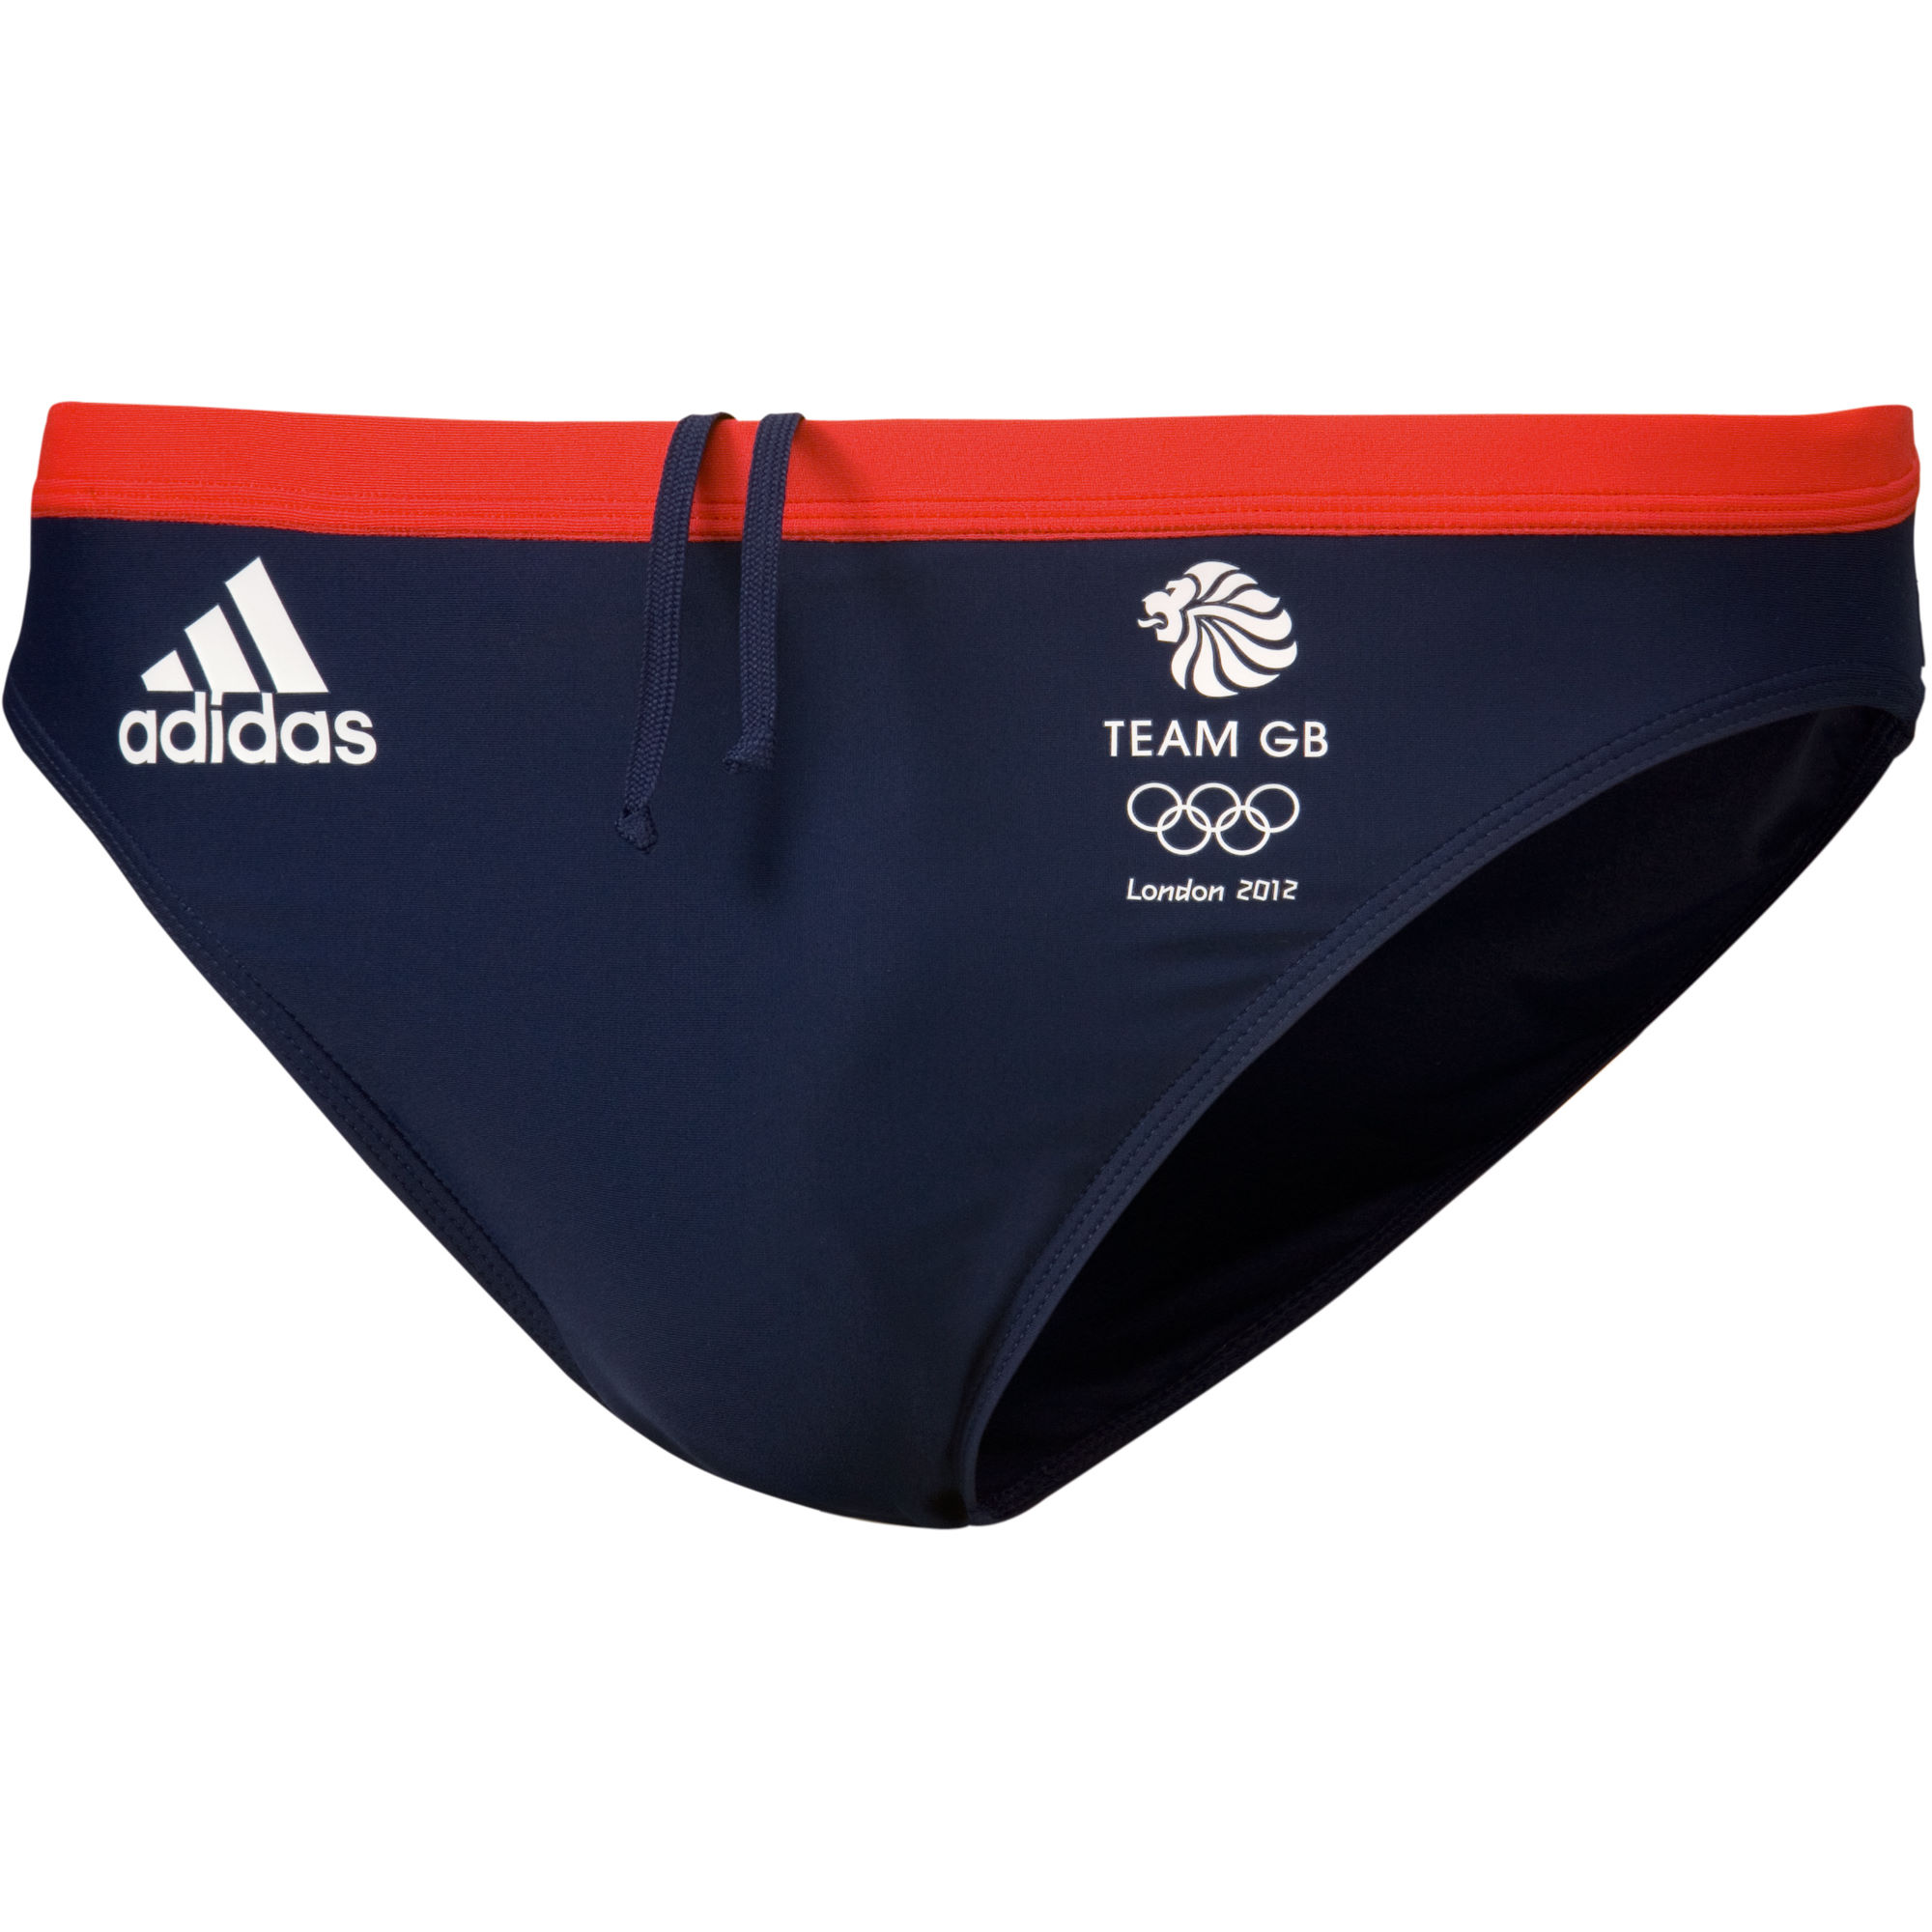 maillots de bain homme adidas london olympics 2012 team gb swimming trunk wiggle france. Black Bedroom Furniture Sets. Home Design Ideas